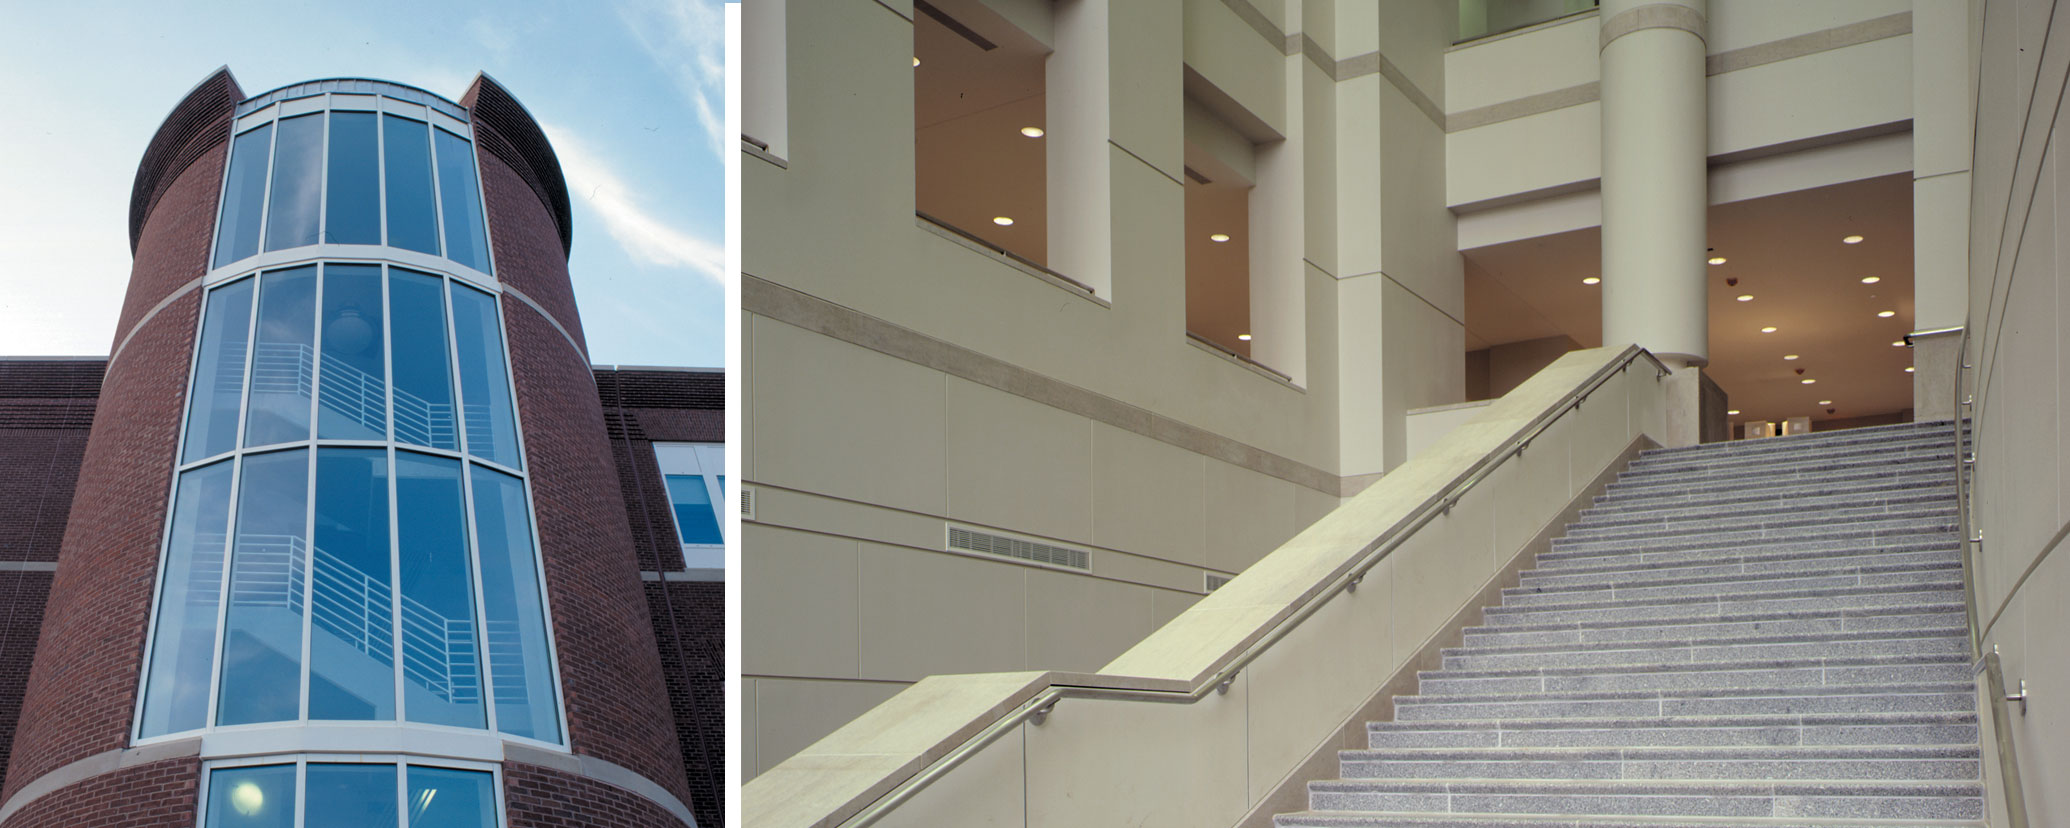 Caddell Construction- U.S. Courthouse, Greenville, TN